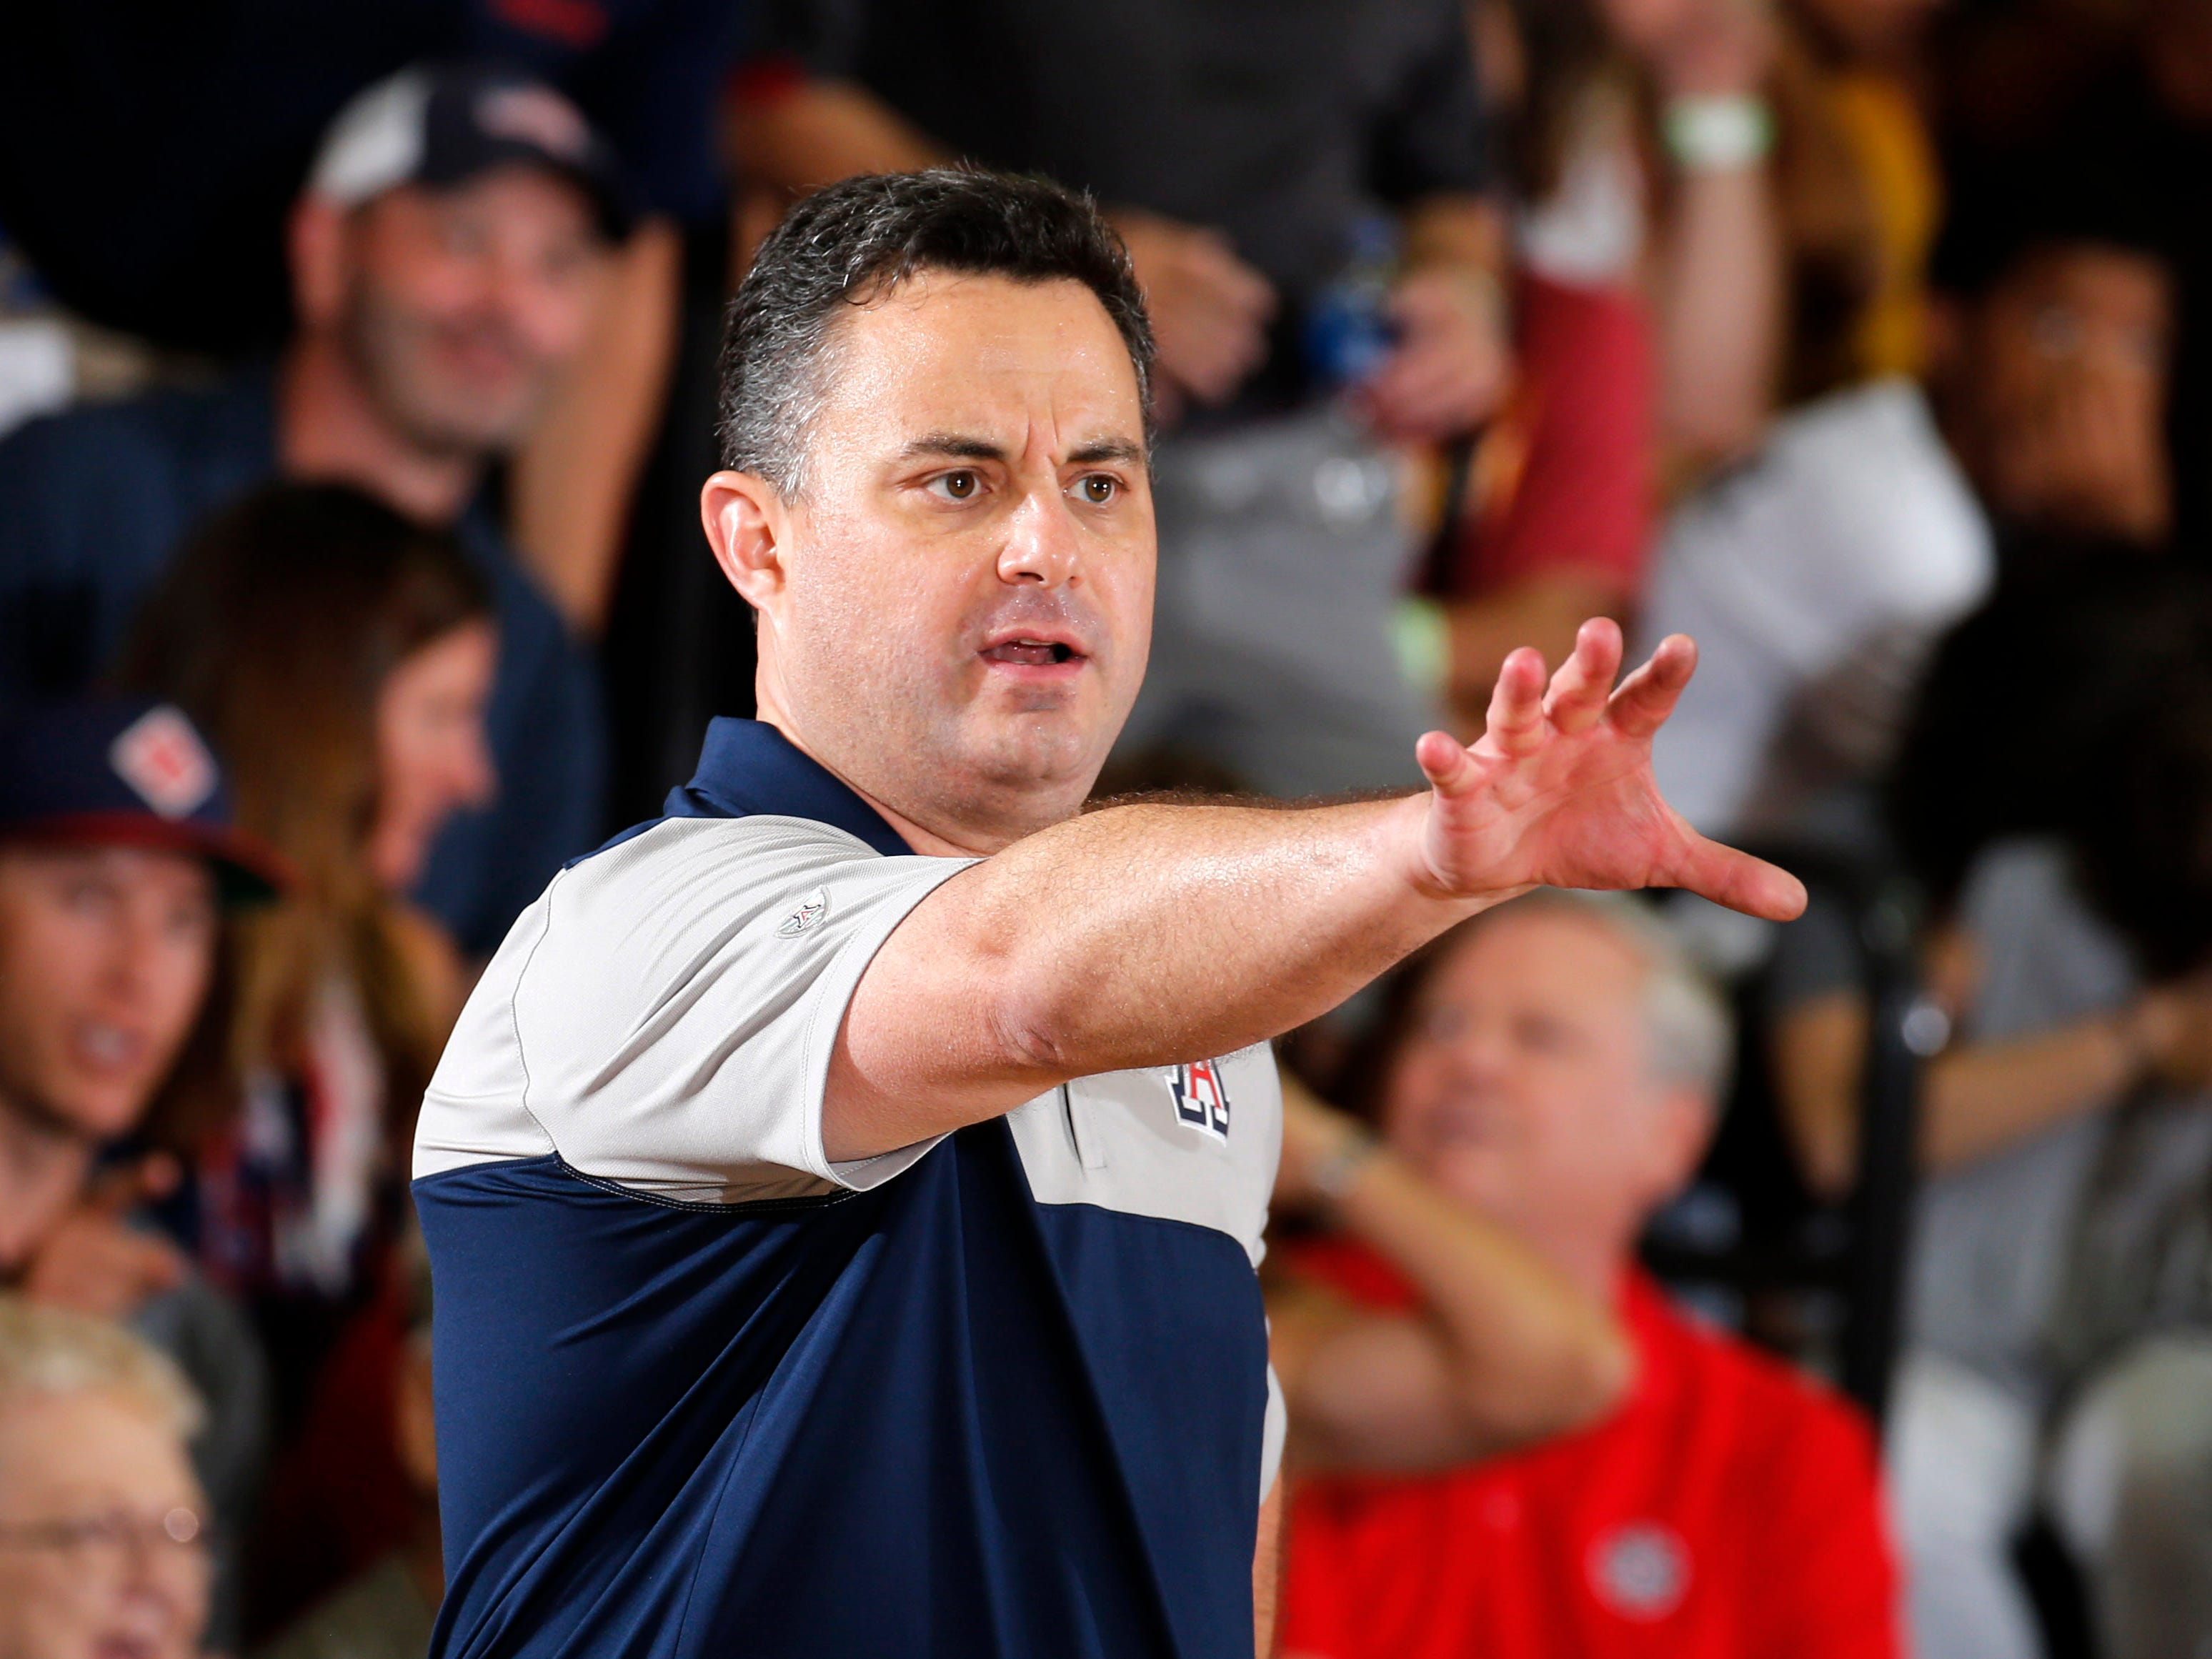 Arizona Wildcats coach Sean Miller coaches on the sidelines against the Iowa State Cyclones in the second half during round one of the Maui Jim Maui Invitational at Lahaina Civic Center.